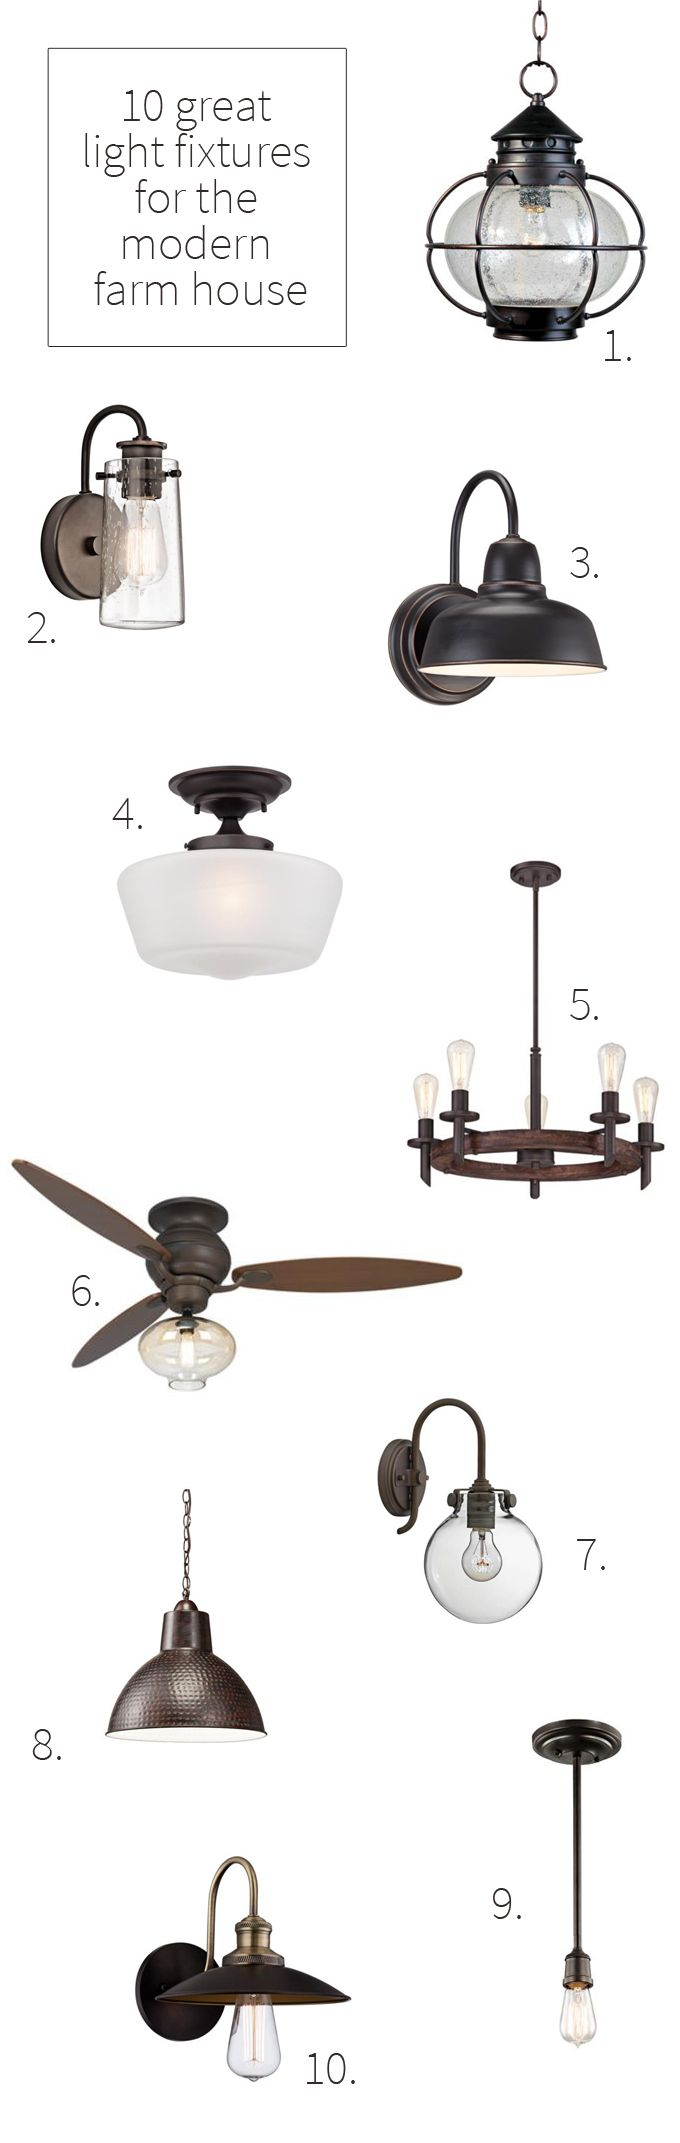 farmhouse wall sconces farmhouse kitchen lighting fixtures 10 Great Farm House Light Fixtures